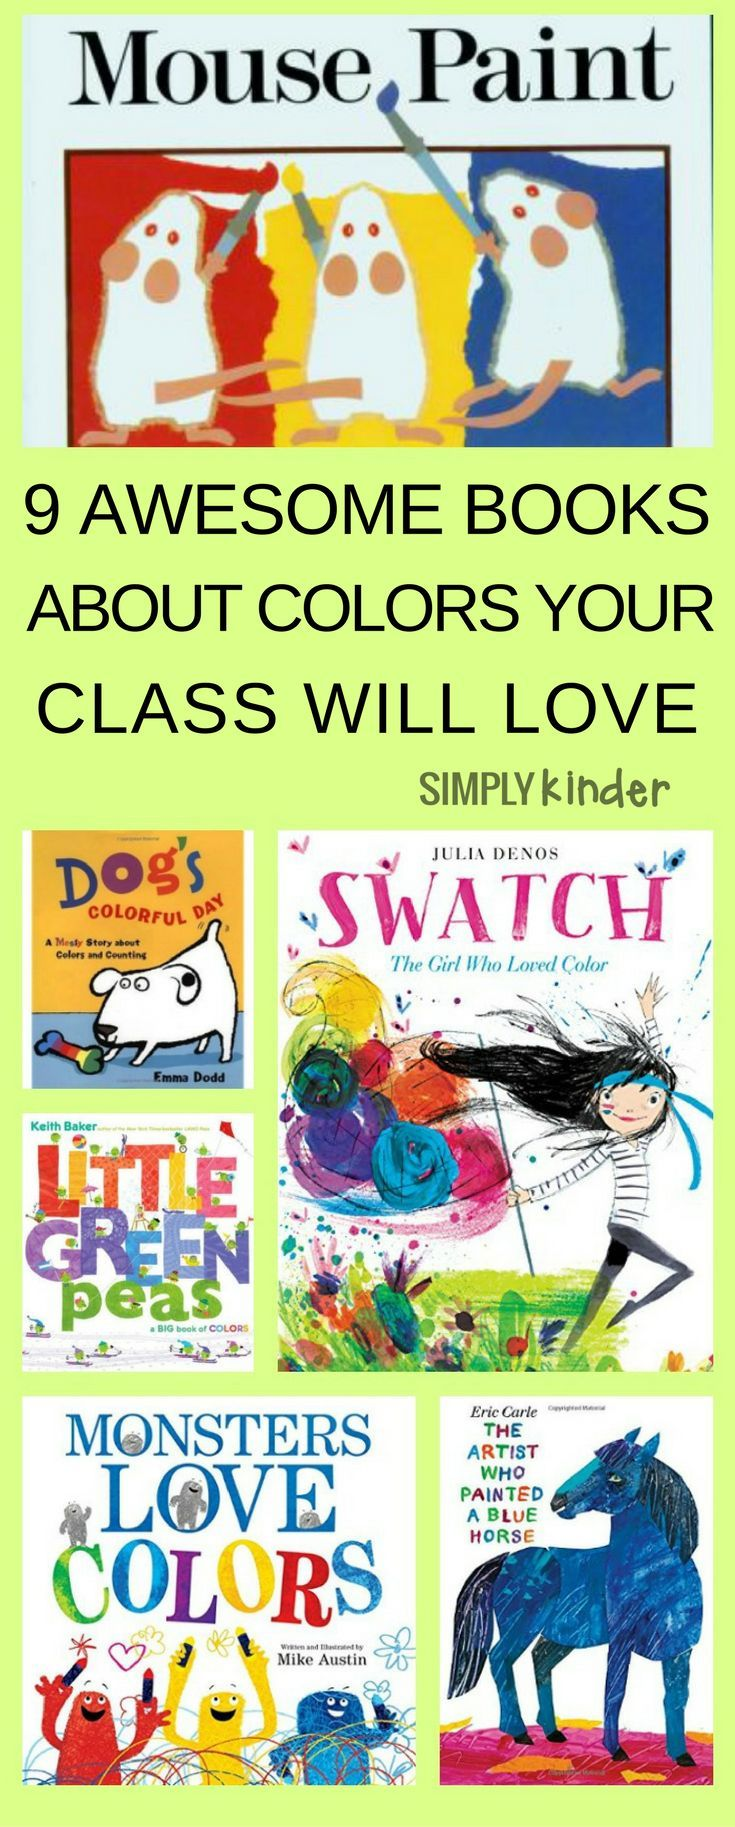 9 Awesome Books About Color Your Class Will Love | Top Teacher Tips ...